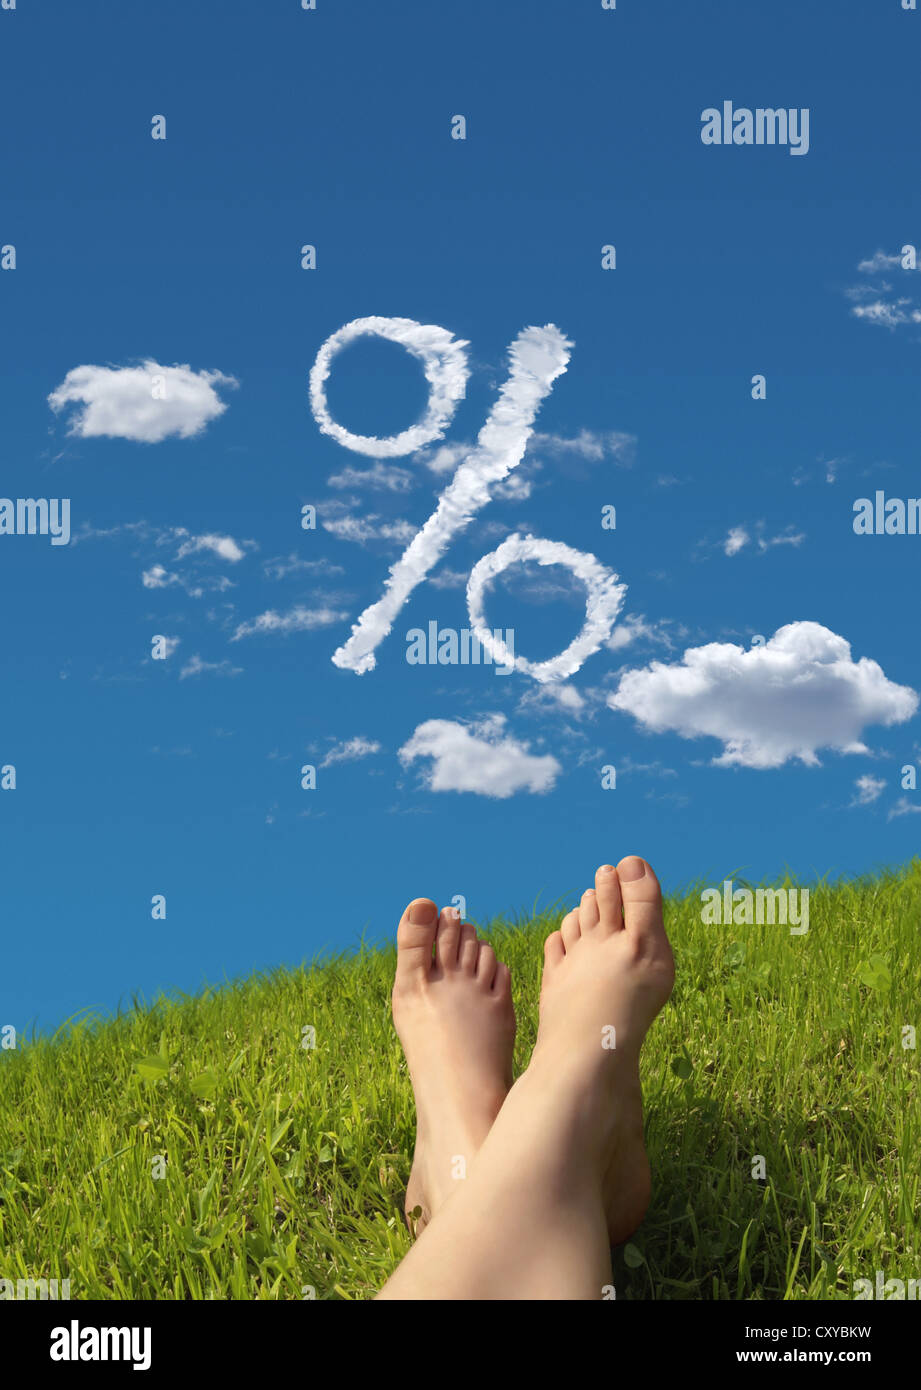 Woman lying on a meadow, detail of feet with a cloud formation shaped like a percent symbol in the sky - Stock Image